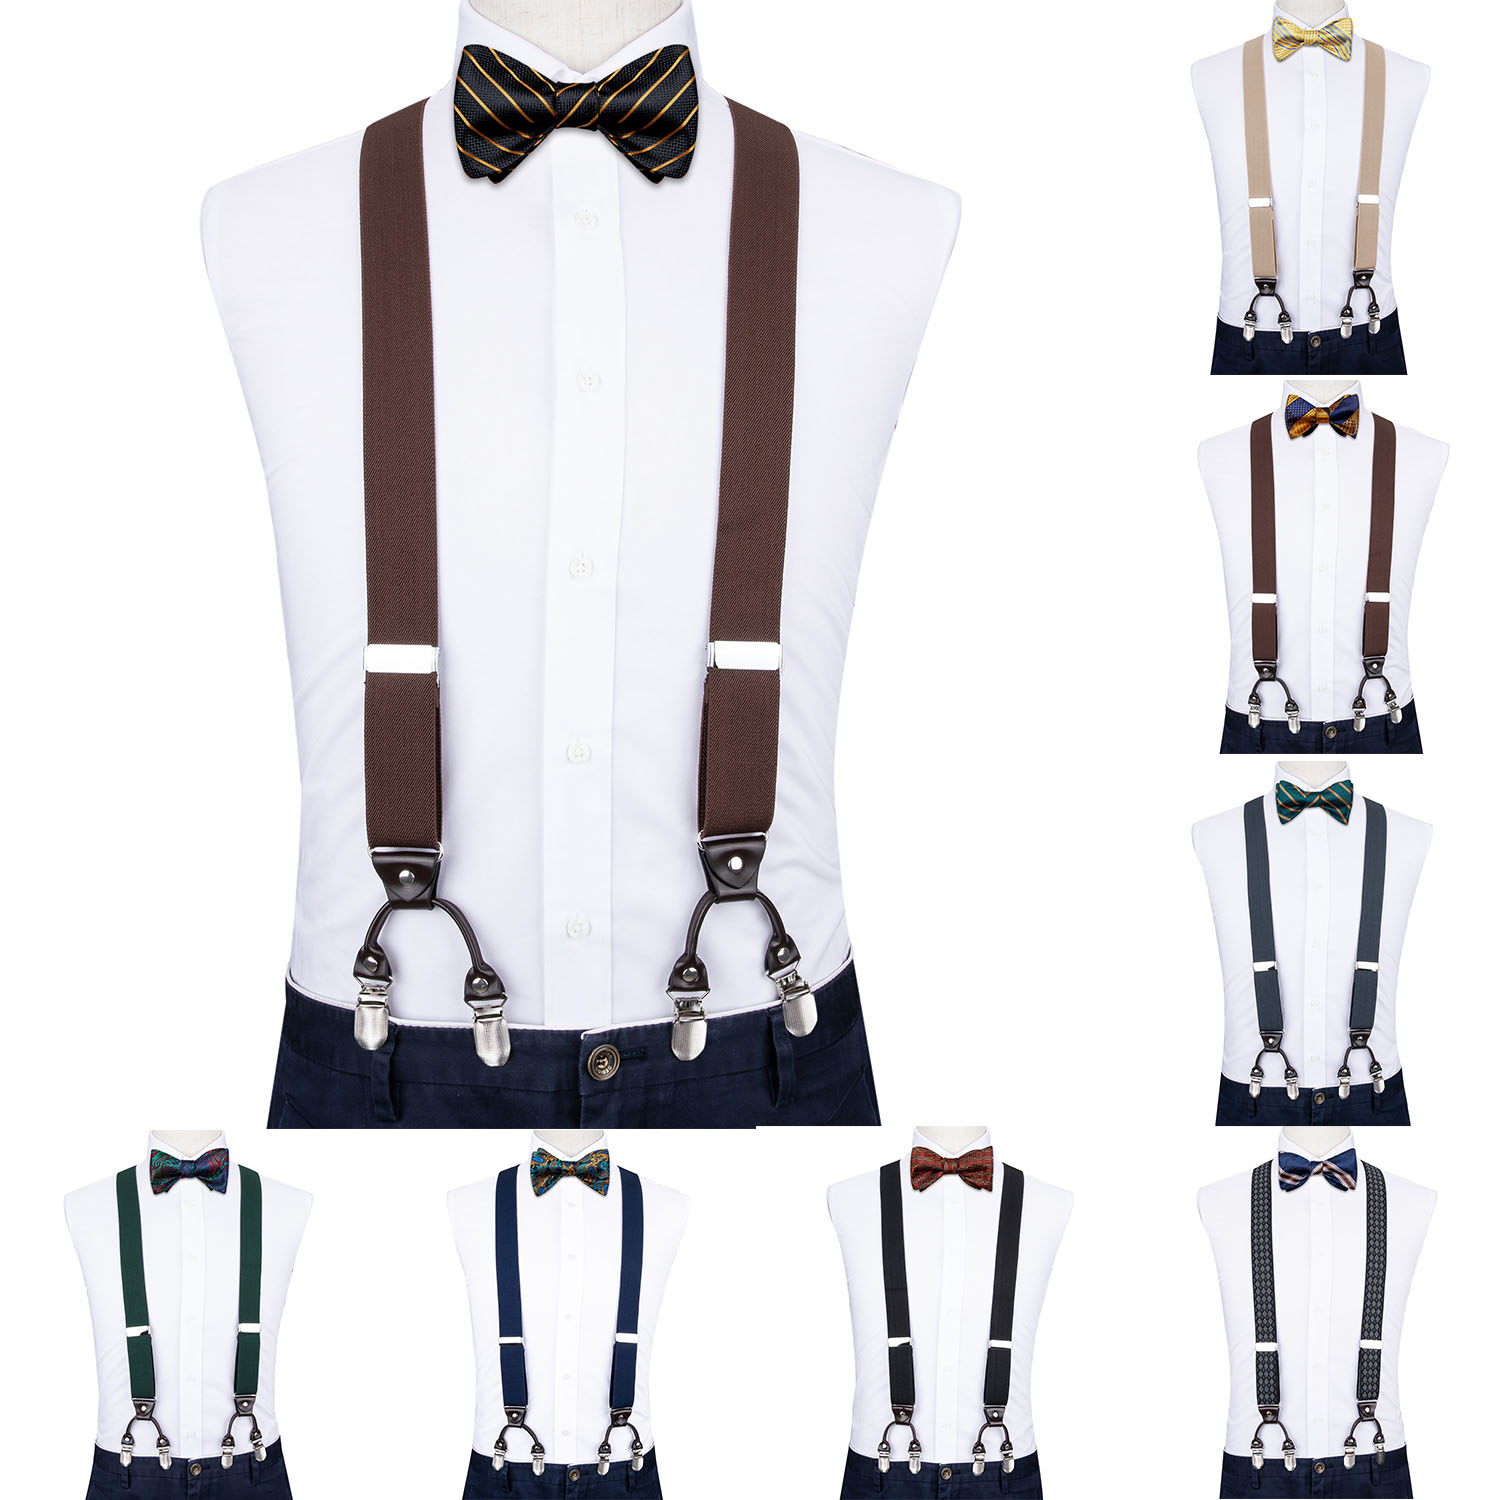 4PC Men Coffee Suspender Genuine Leather 6 Clips Brace Male Vintage Wedding Butterfly Bow Tie Hanky Cufflinks Set DiBanGu